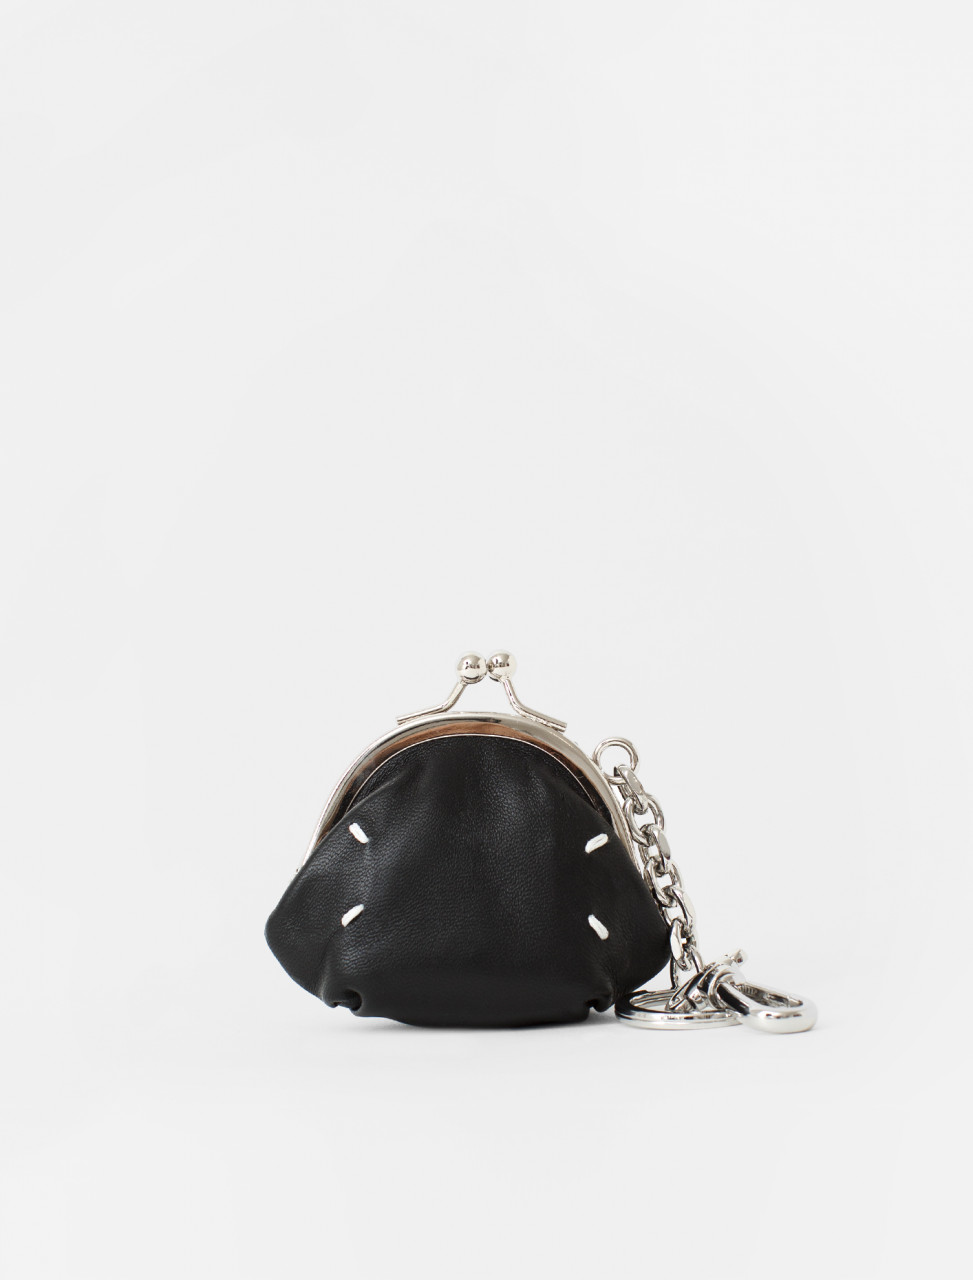 Snap Closure Coin Purse in Black